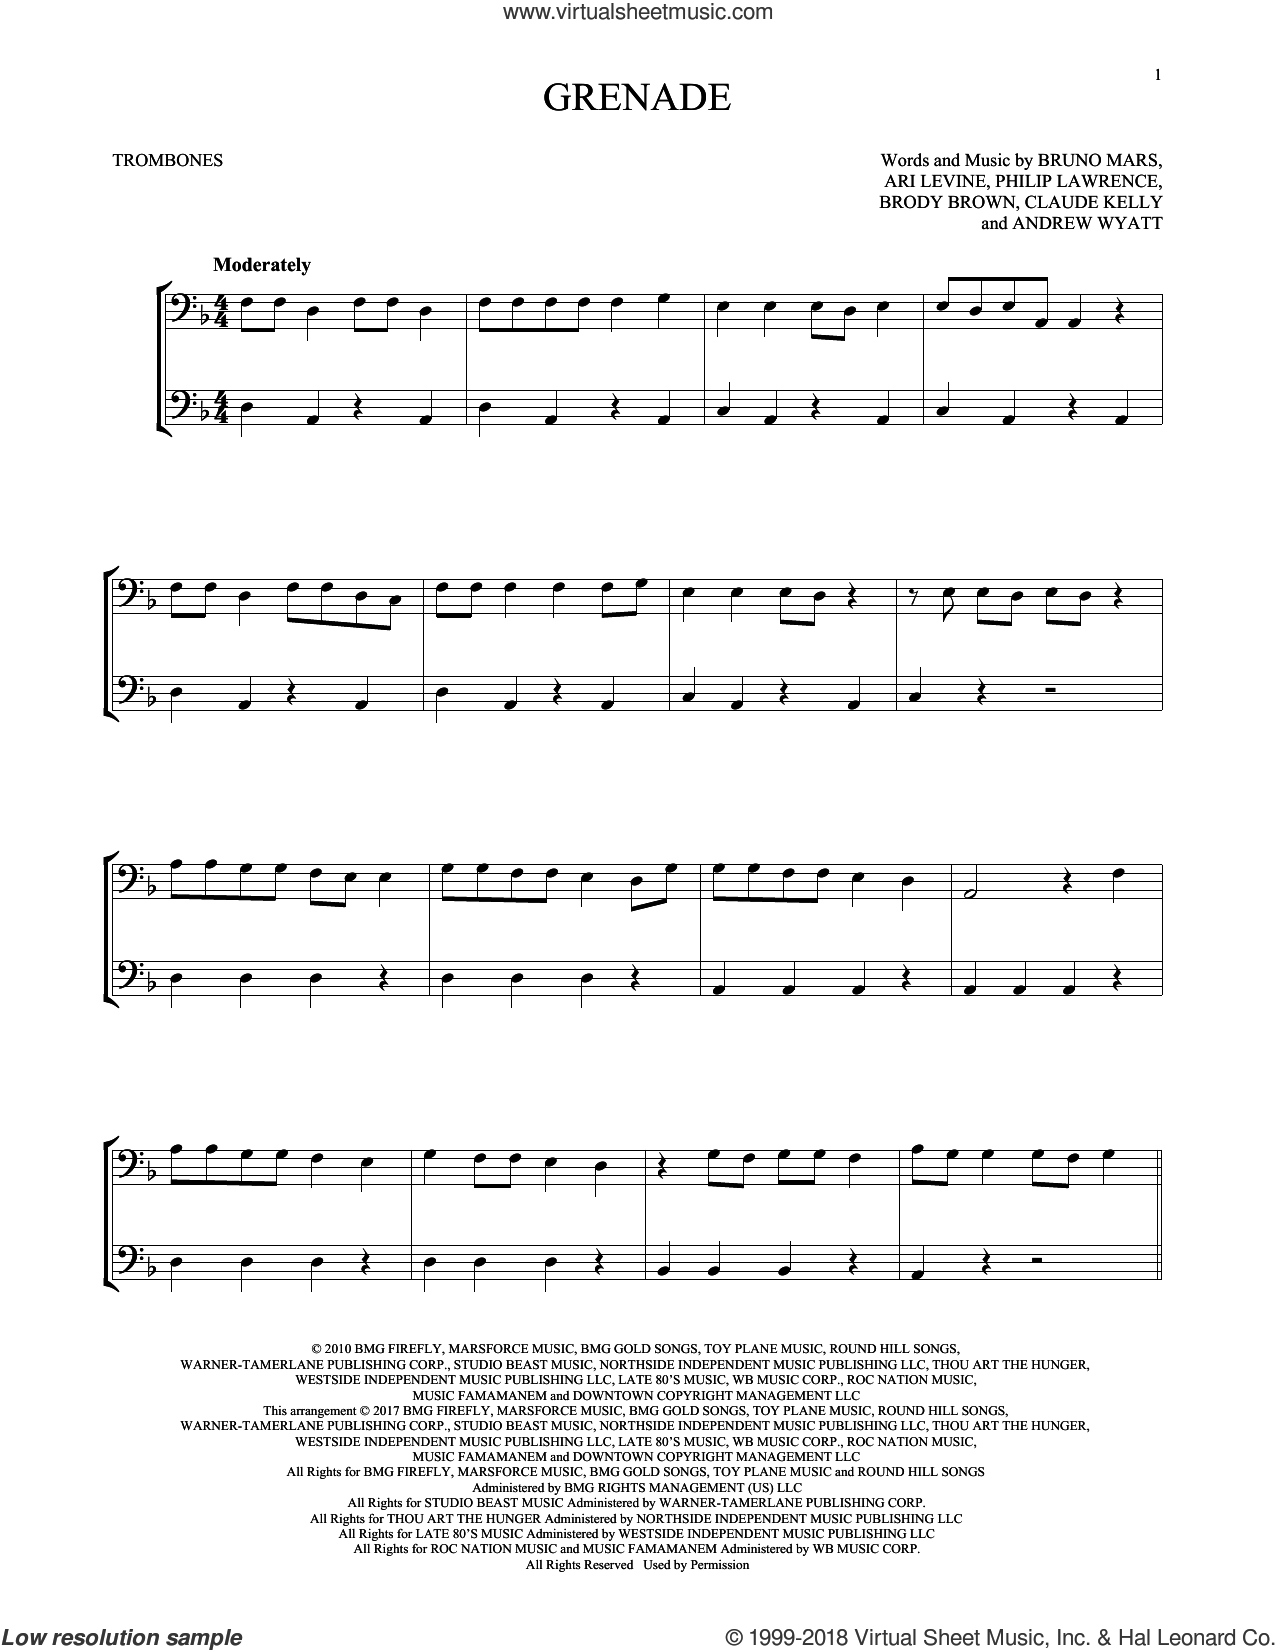 Grenade sheet music for two trombones (duet, duets) by Bruno Mars, Andrew Wyatt, Ari Levine, Brody Brown, Claude Kelly and Philip Lawrence, intermediate skill level